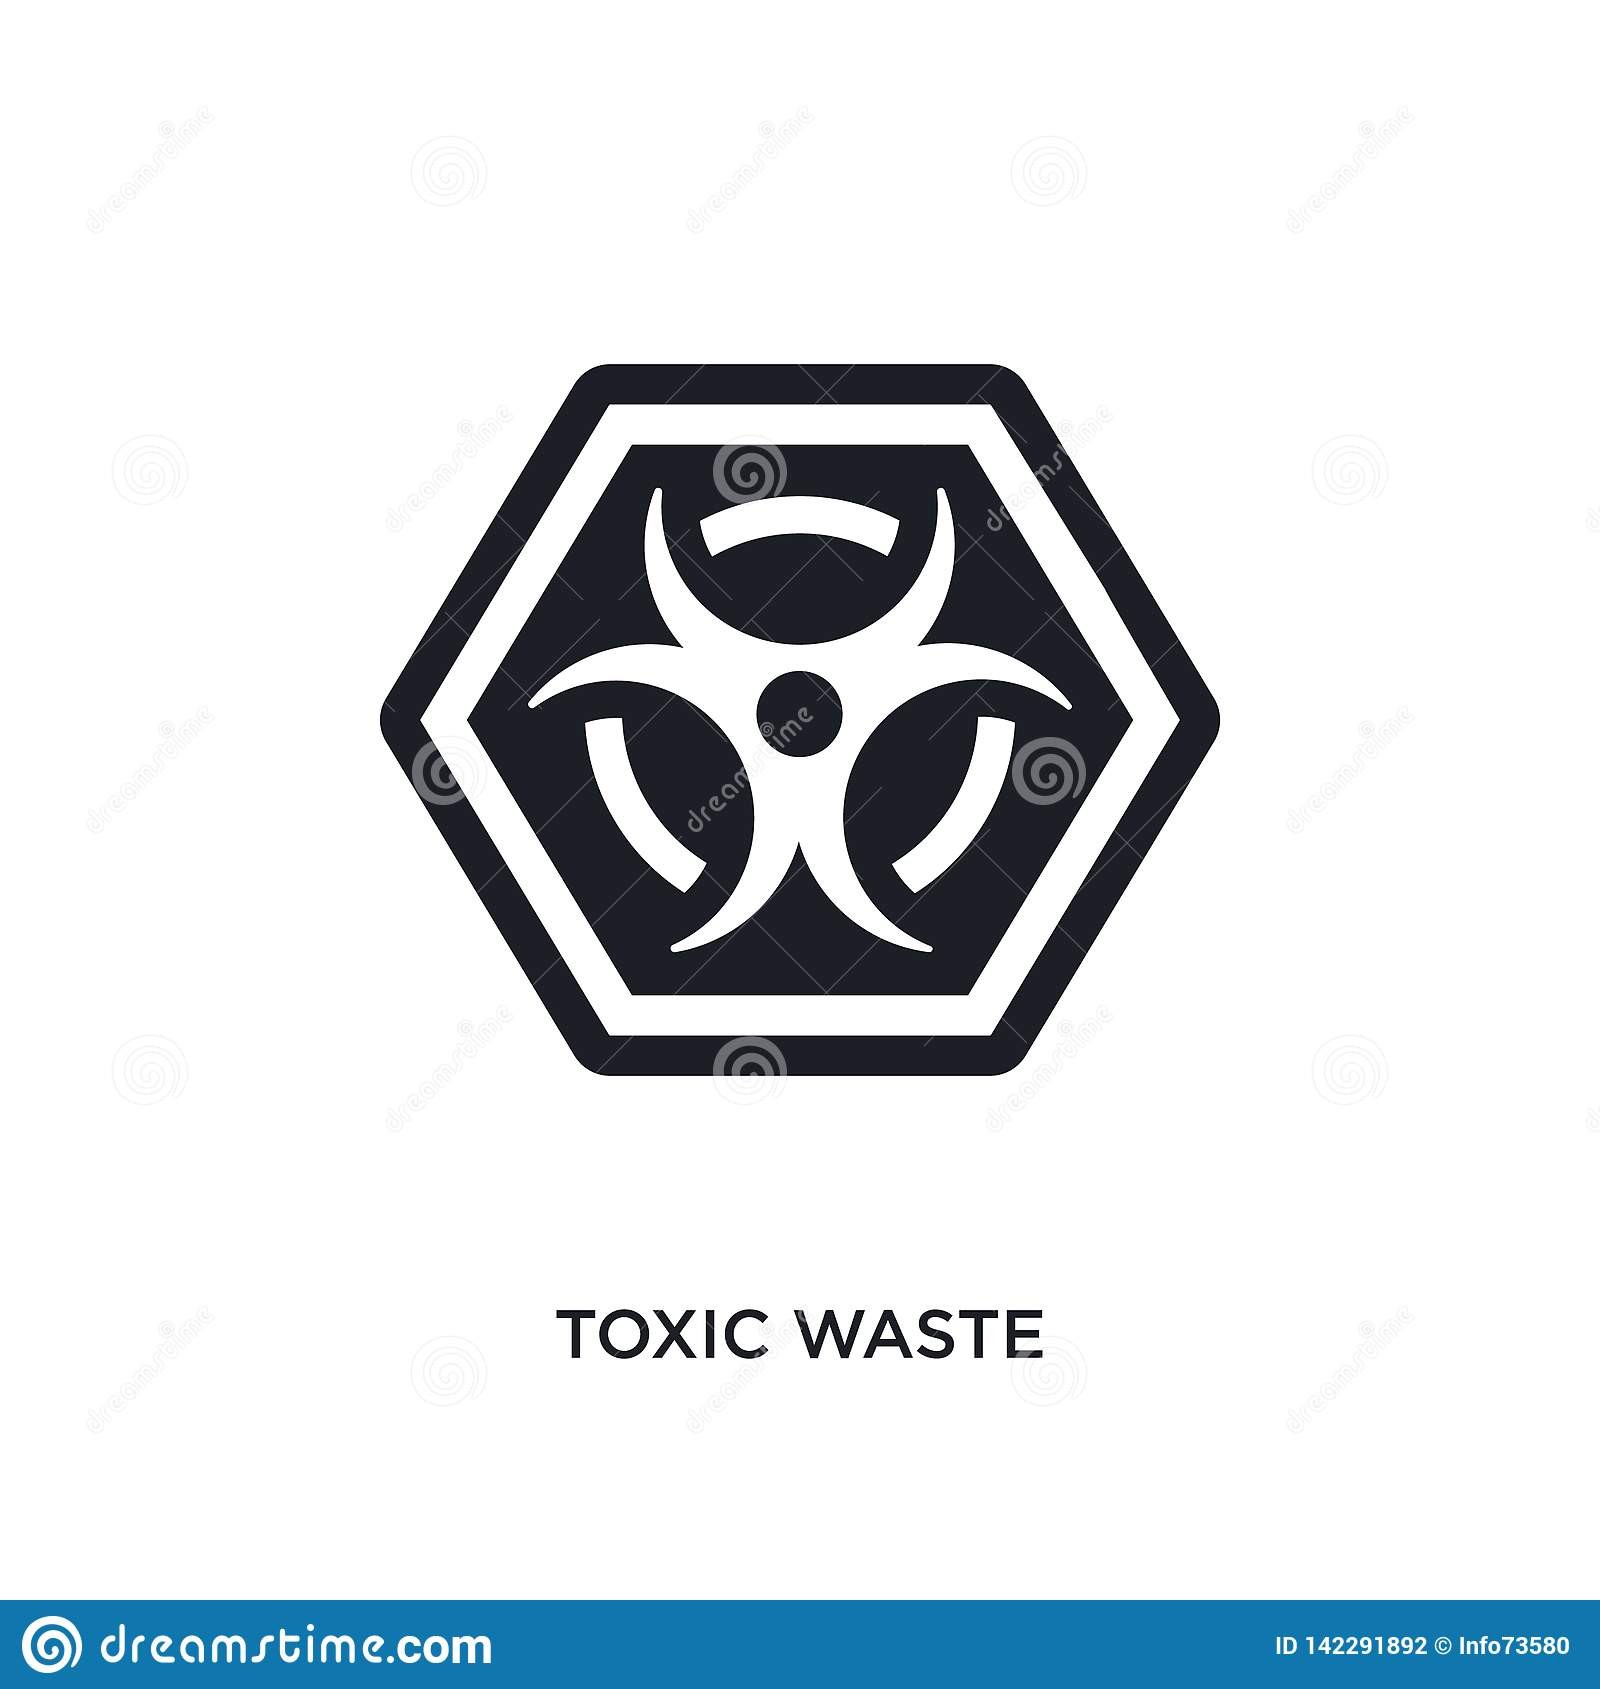 toxic waste isolated icon. simple element illustration from signs concept icons. toxic waste editable logo sign symbol design on